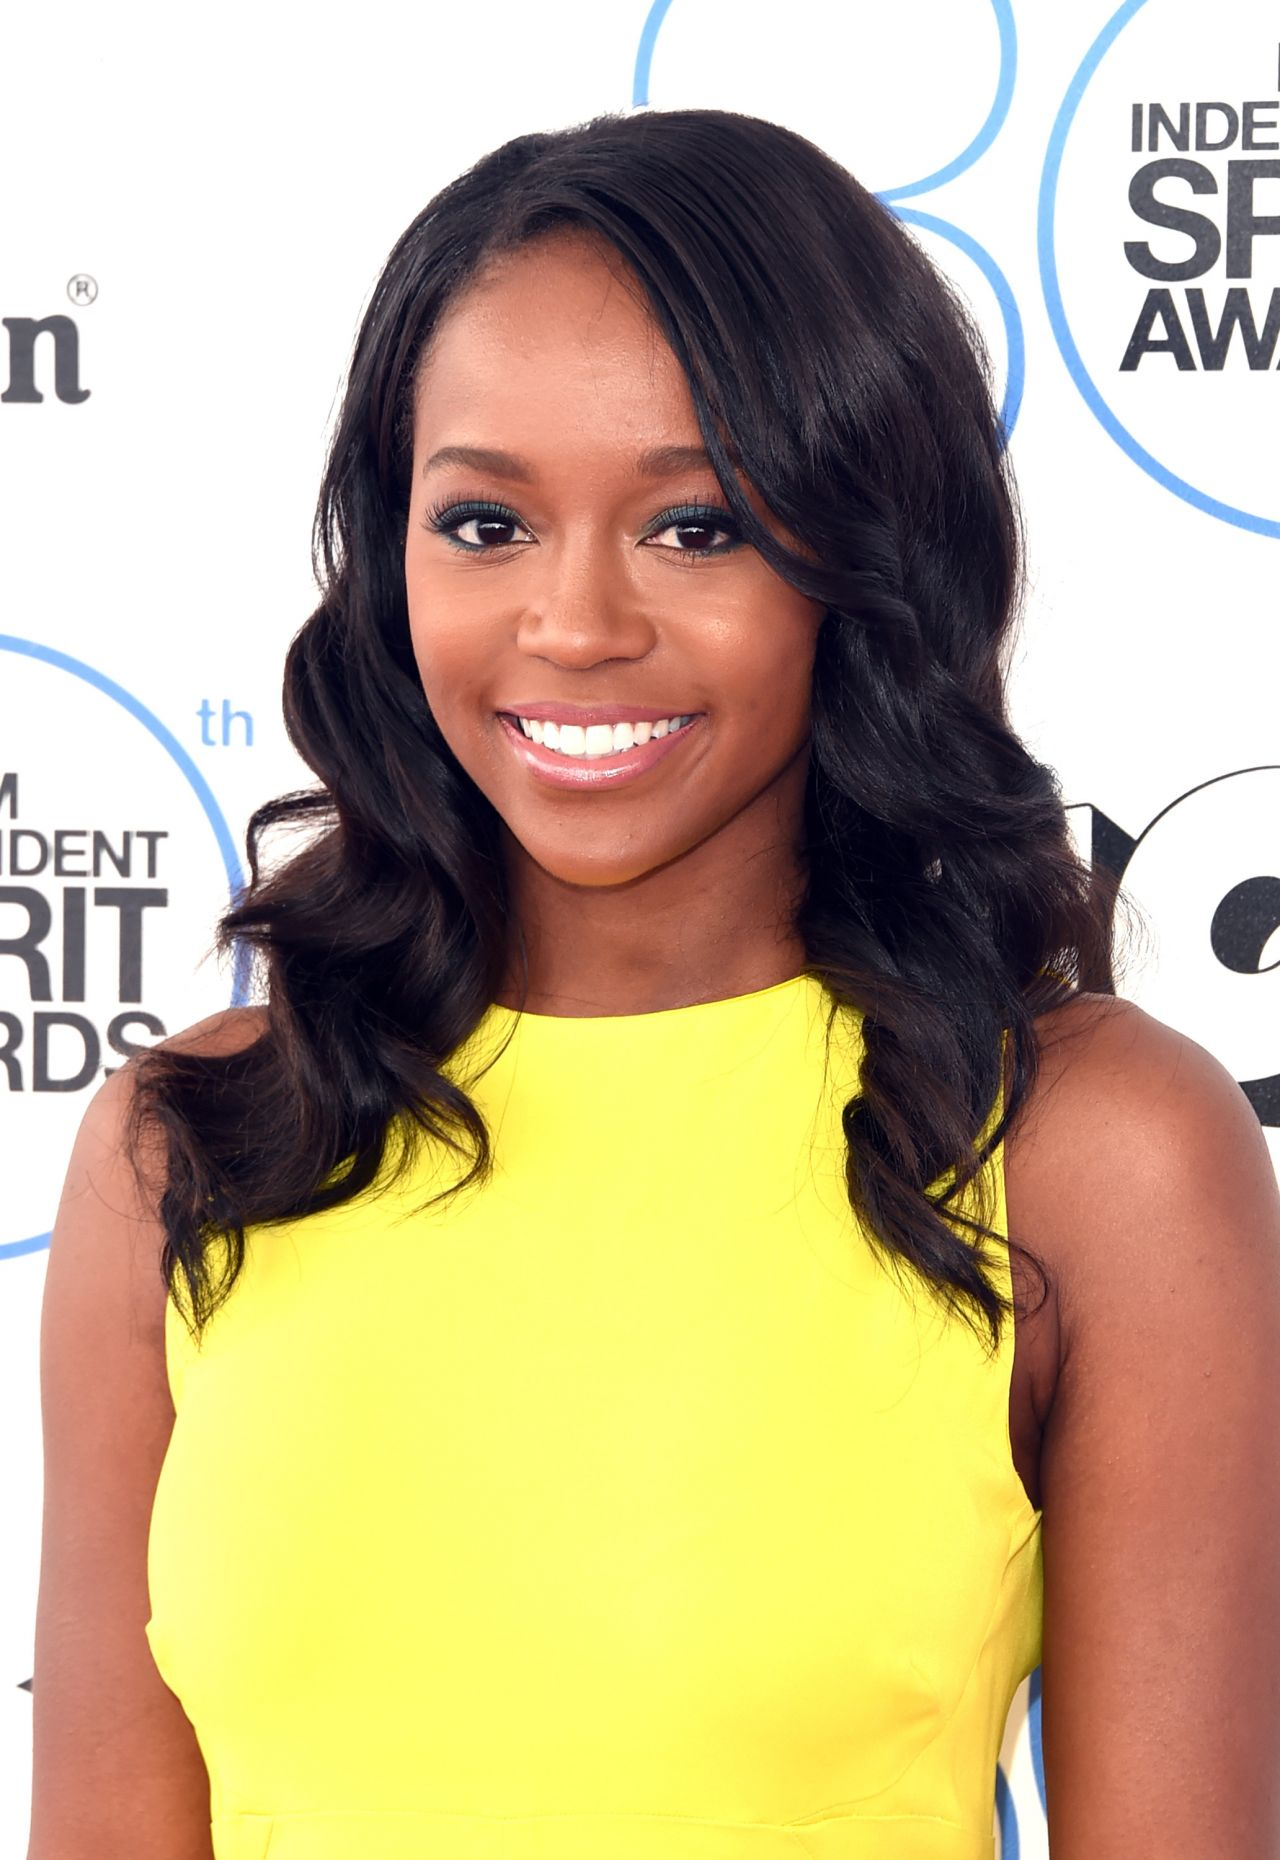 Aja Naomi King at the 2015 Film Independent Spirit Awards